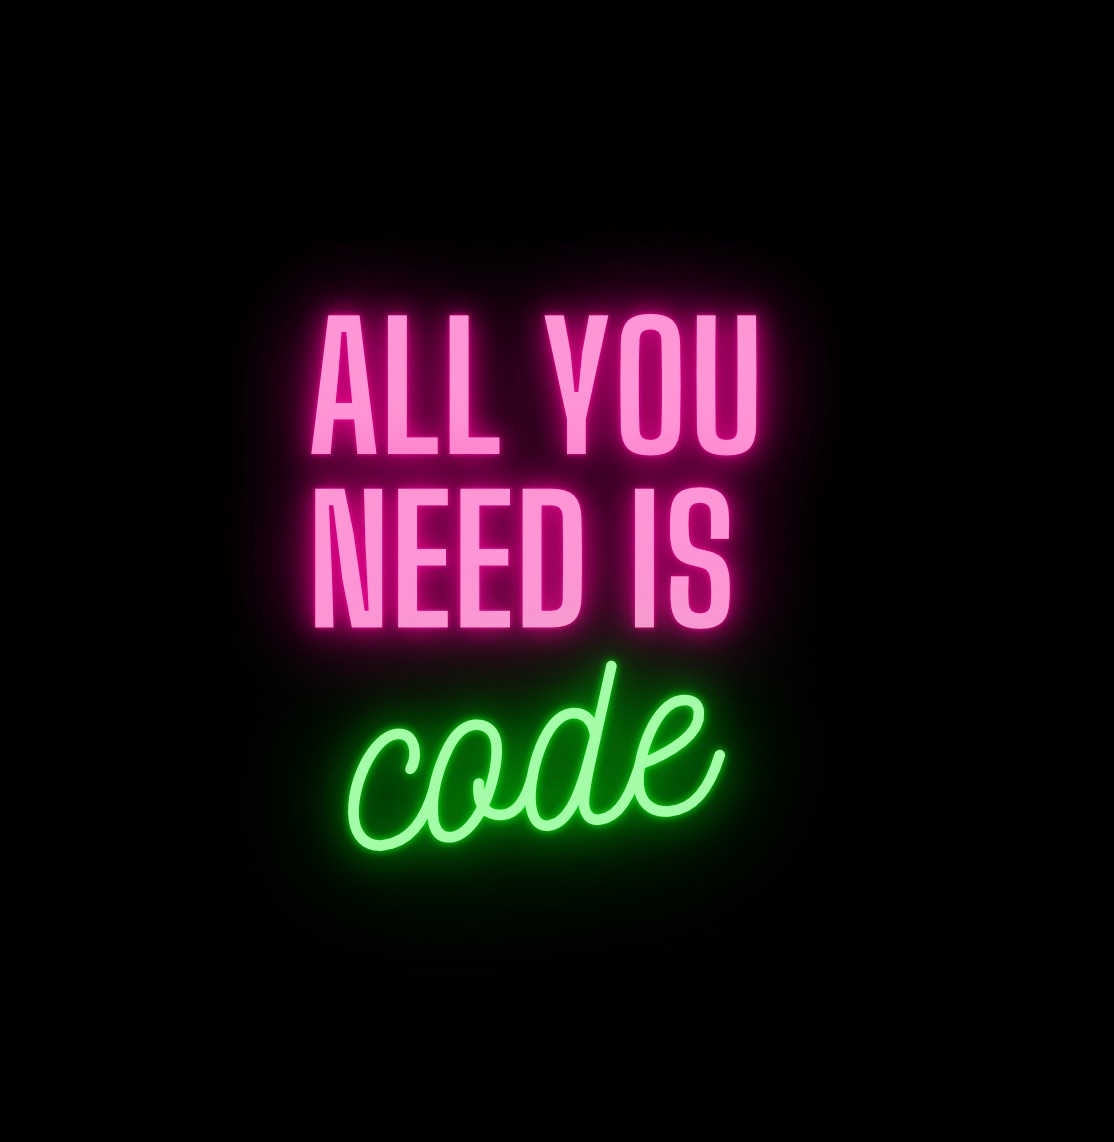 All you need is code  Hacker Noon profile picture